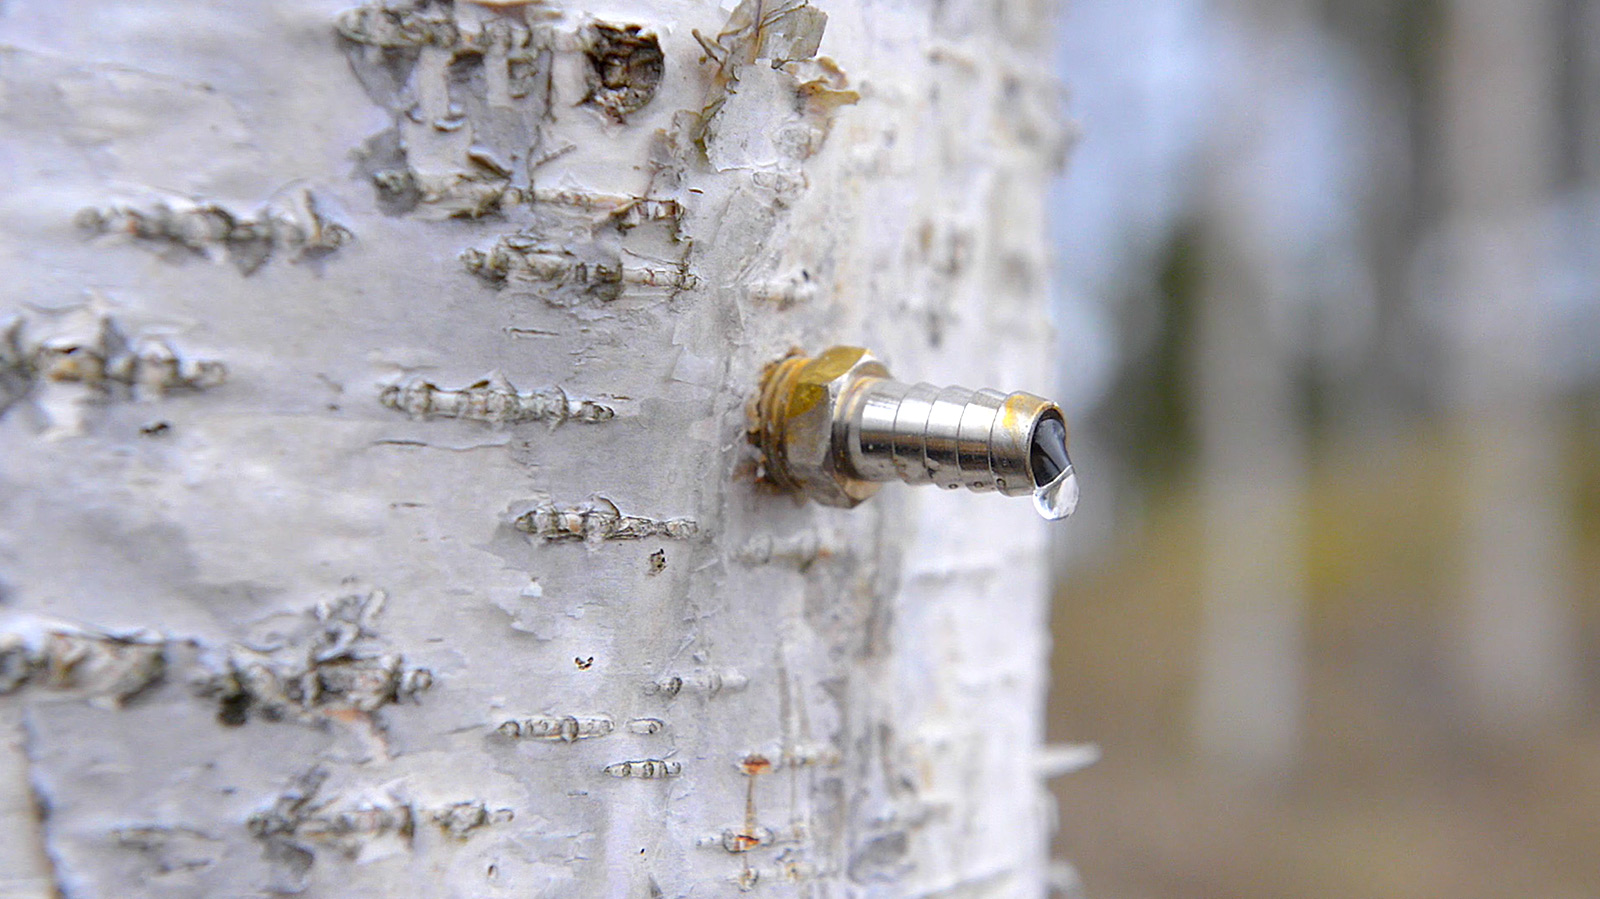 Harvesting birch sap